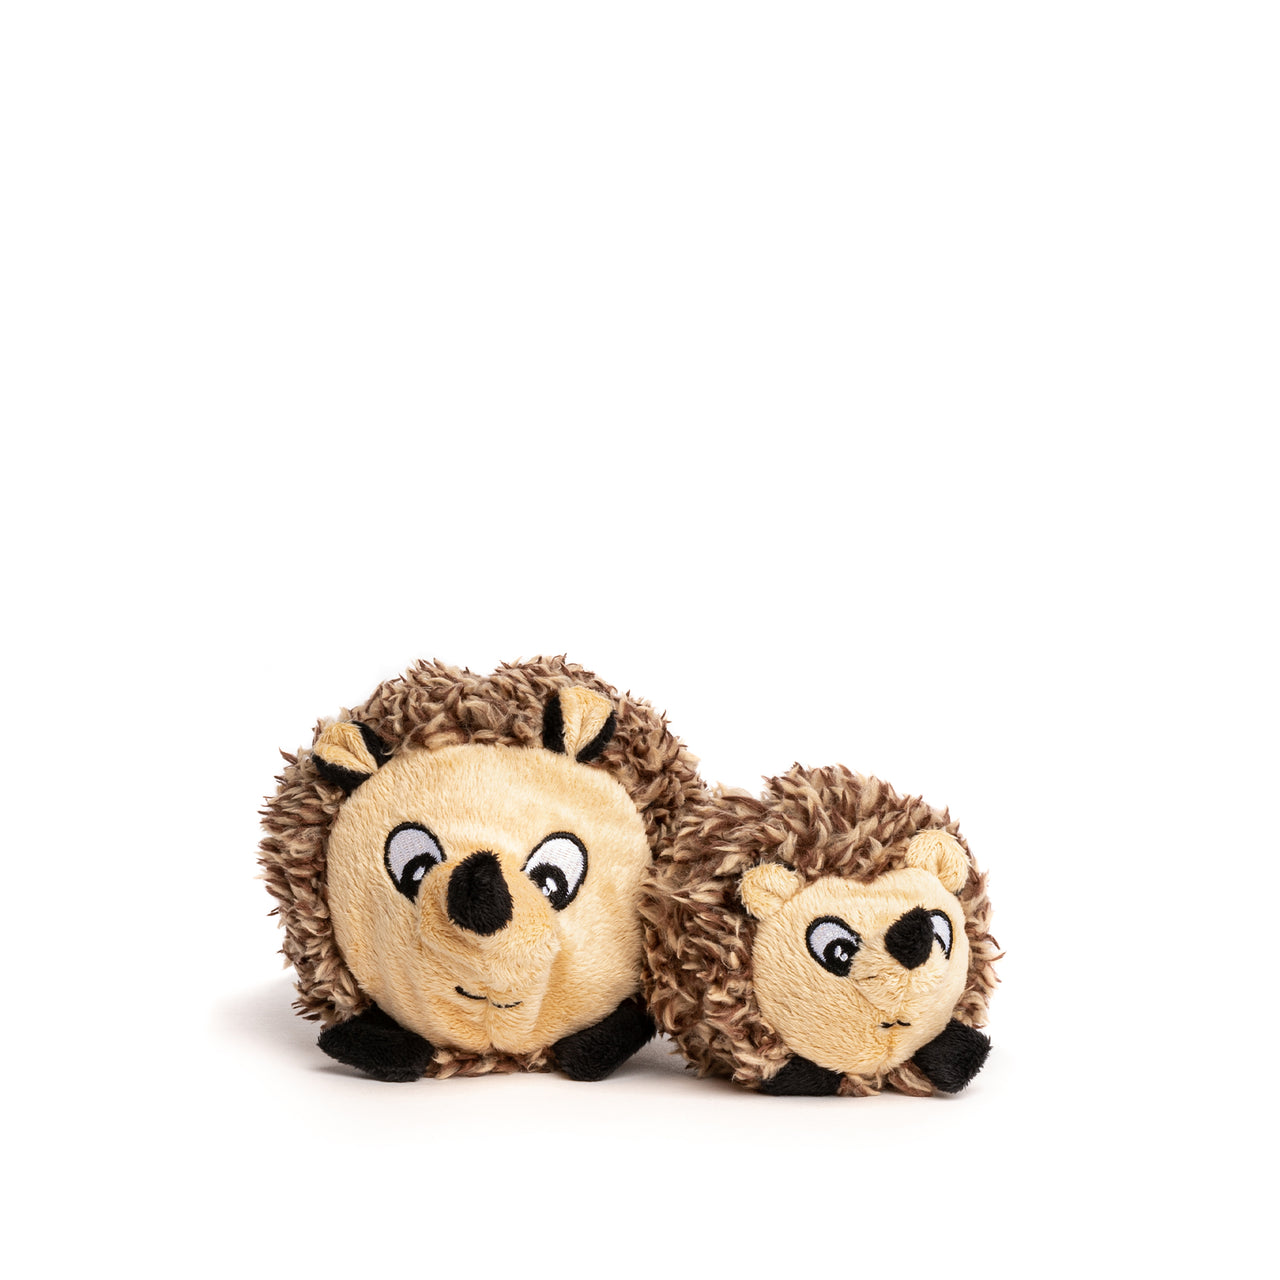 Hedgehog faball®